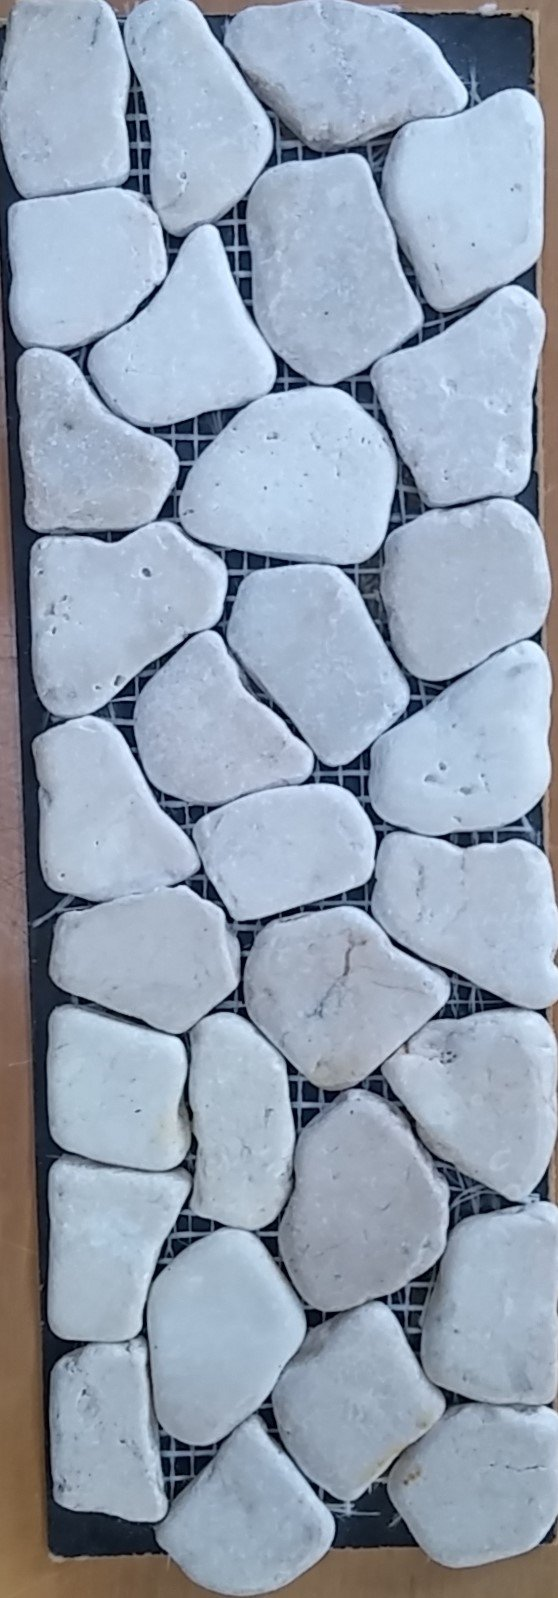 RIVERSTONE FLAT WHITE PEBBLE 10X100-EACH